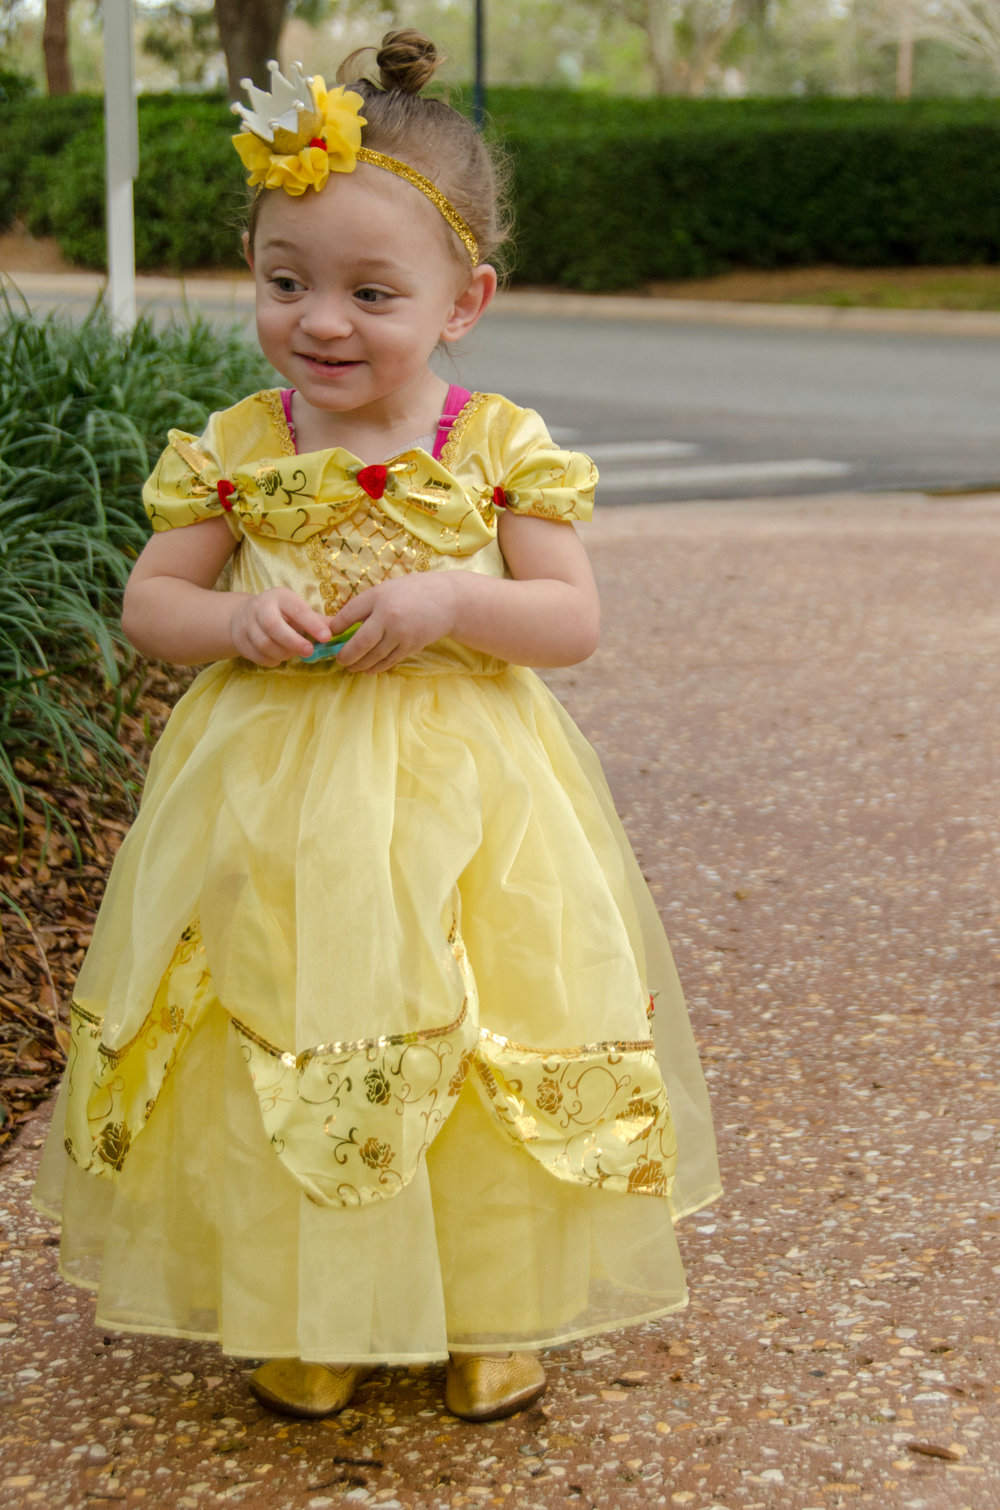 tips for traveling to disney with medical needs - she got guts